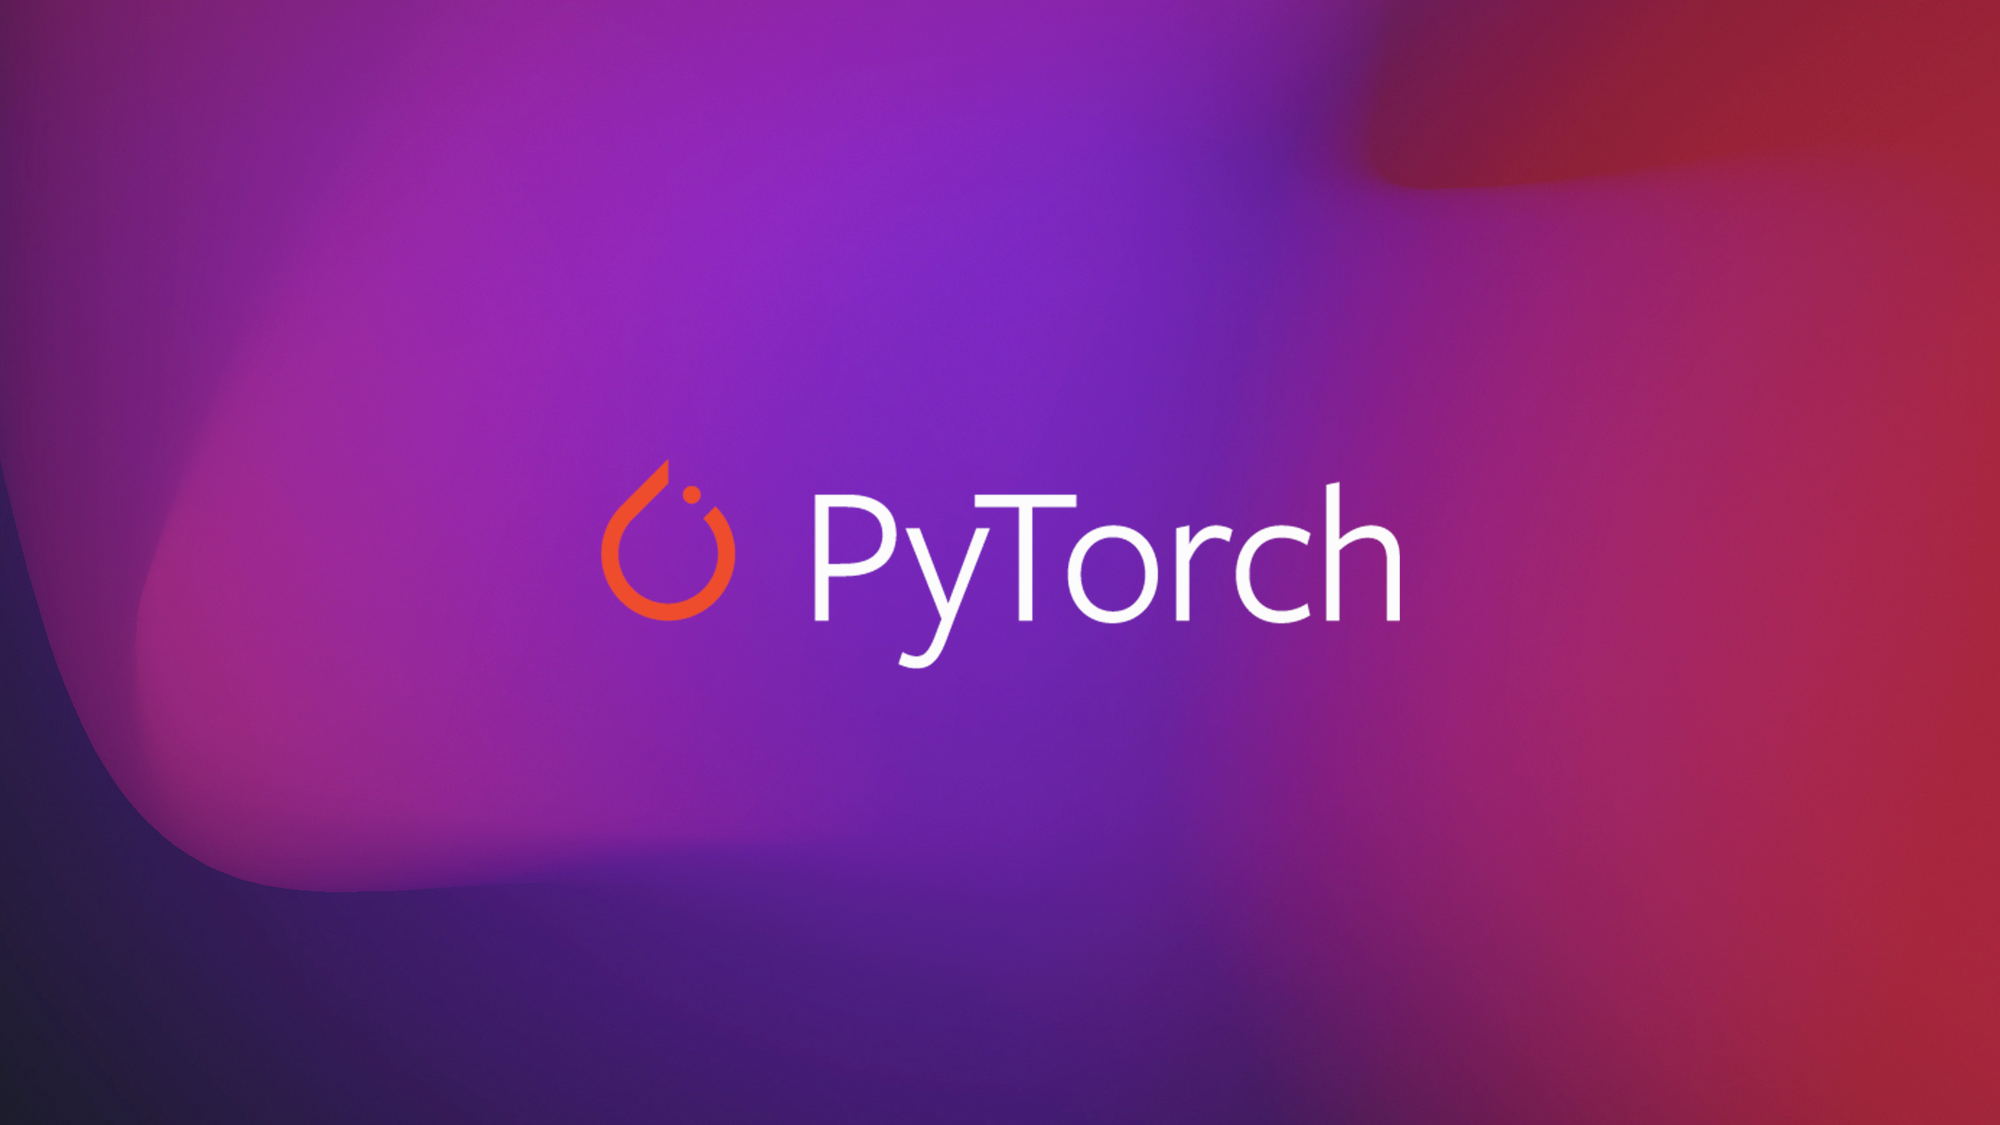 Facebook accelerates AI development with new partners and production capabilities for PyTorch 1.0